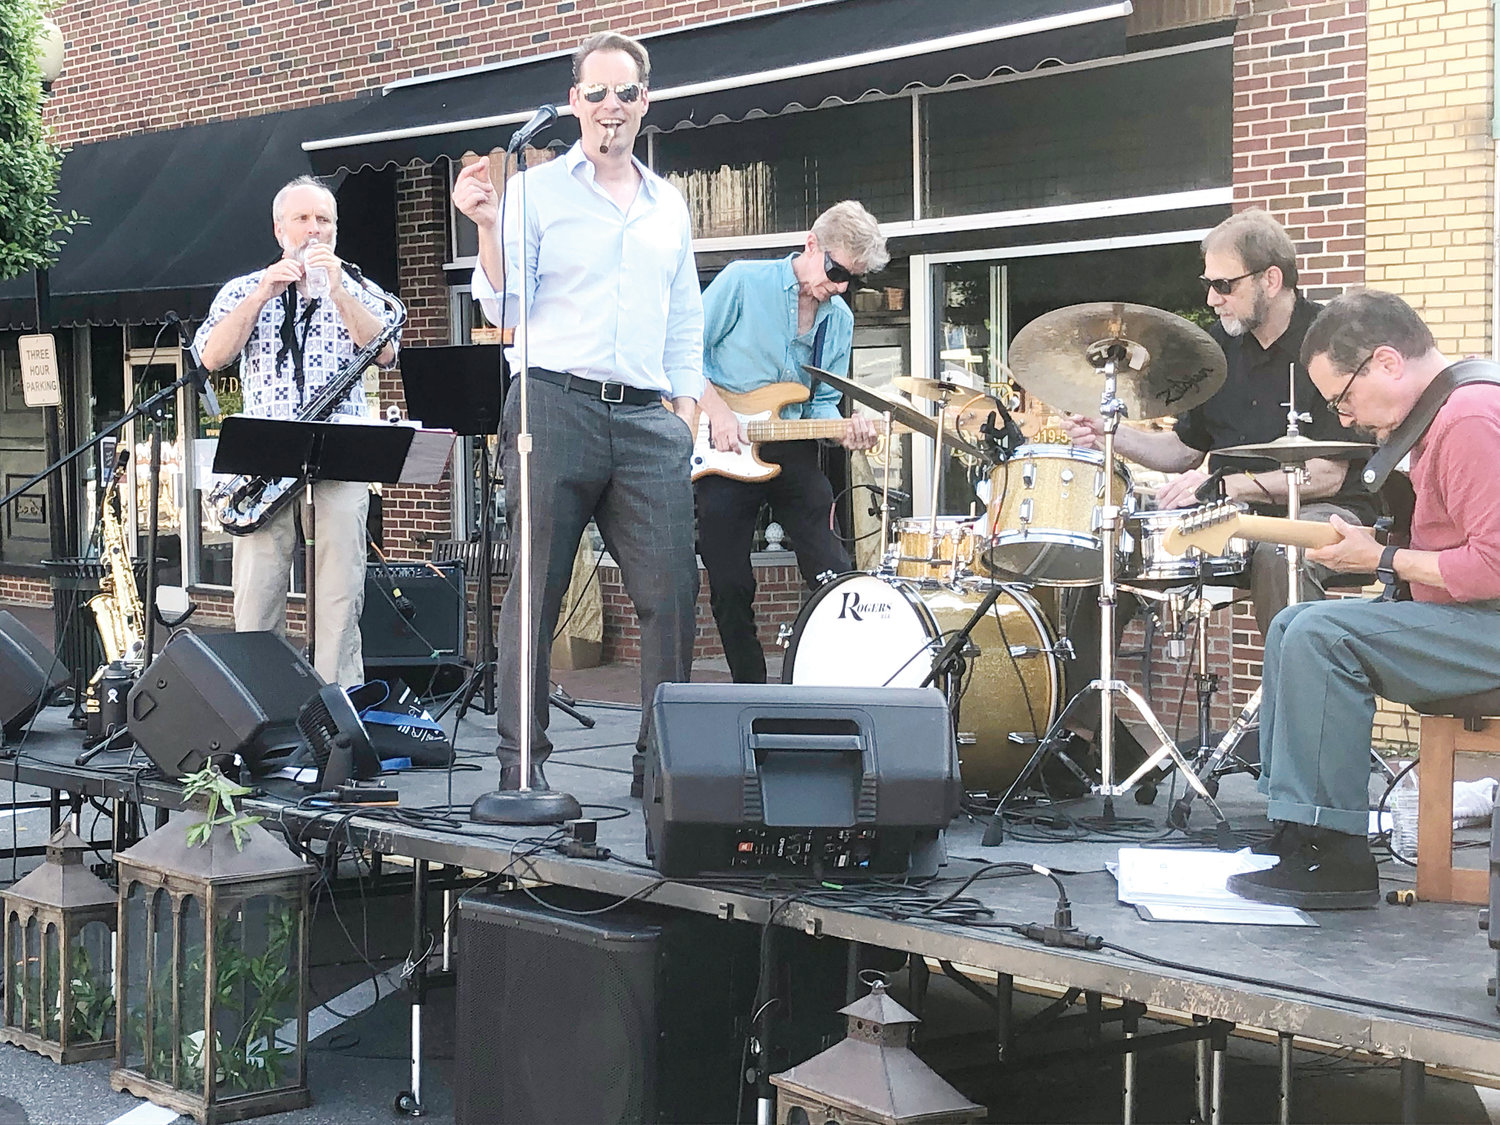 The Dave Quick Jazz band entertained guests as they tasted beverages from local vintners, distillers, and brewers.